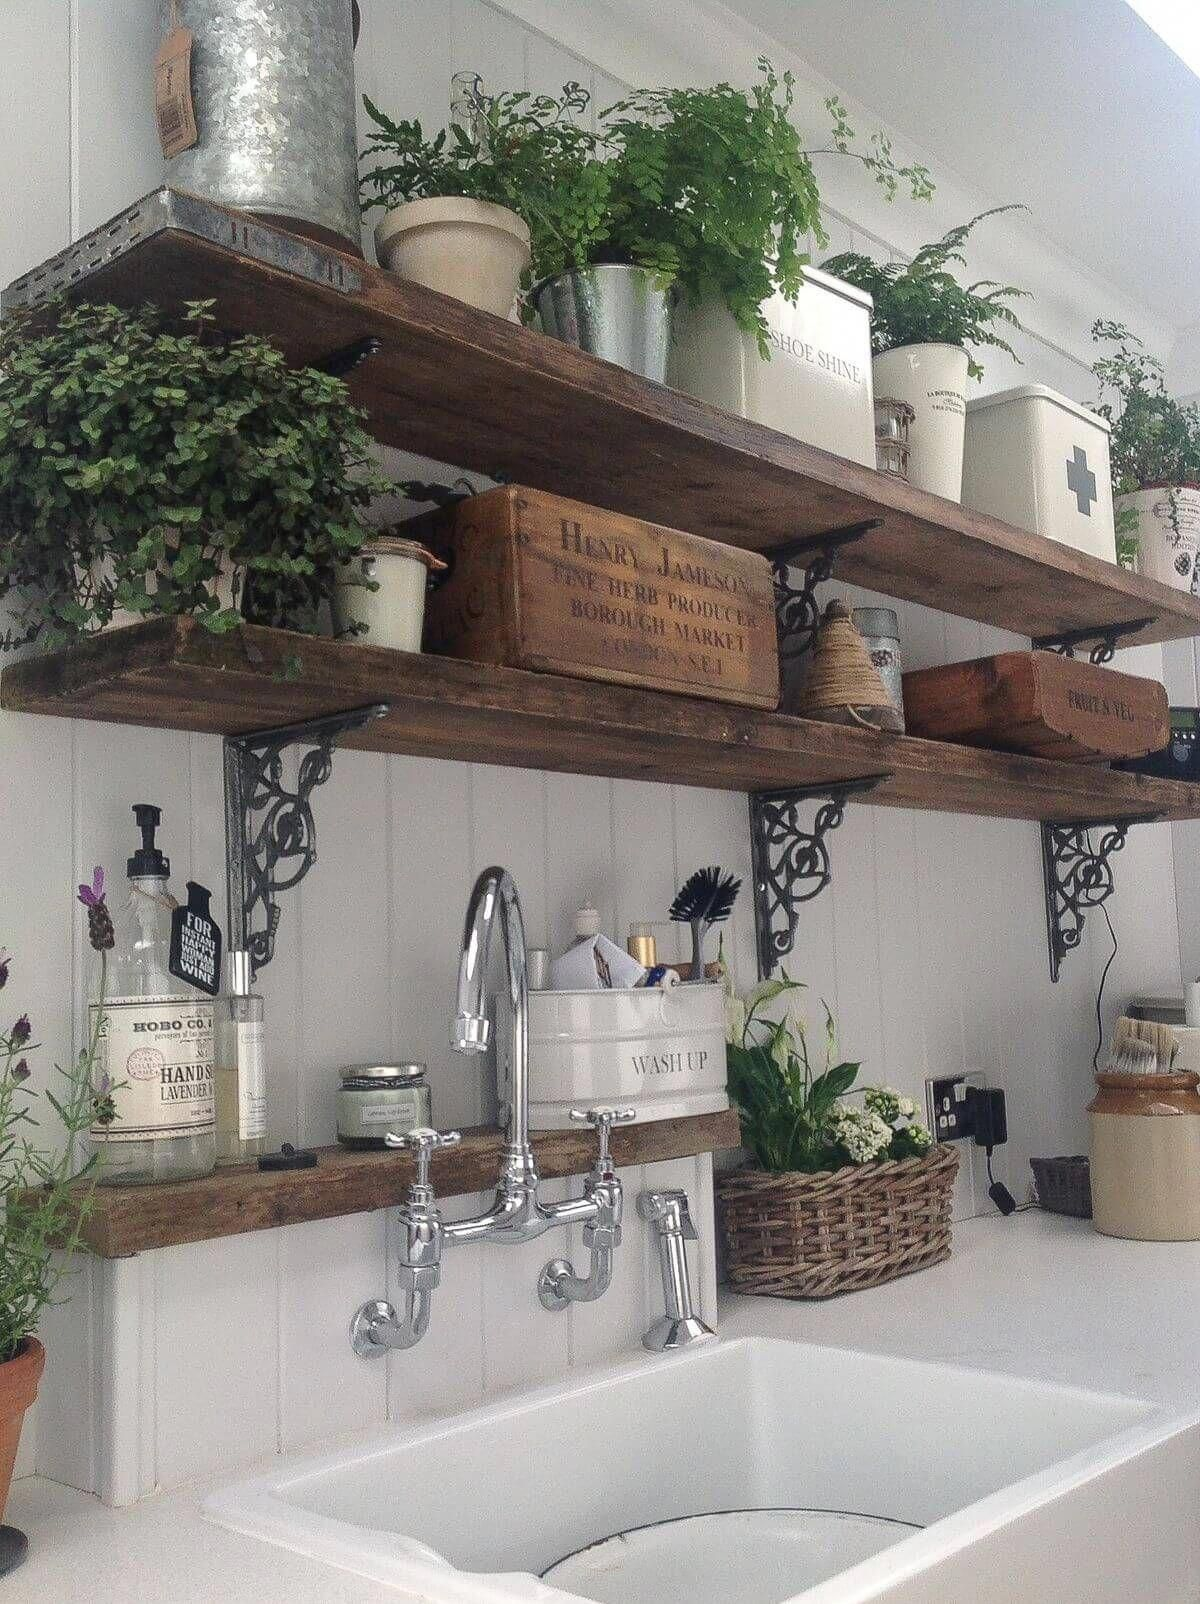 Rustic Wooden Kitchen Shelves with Potted Ferns #diykitchenideas